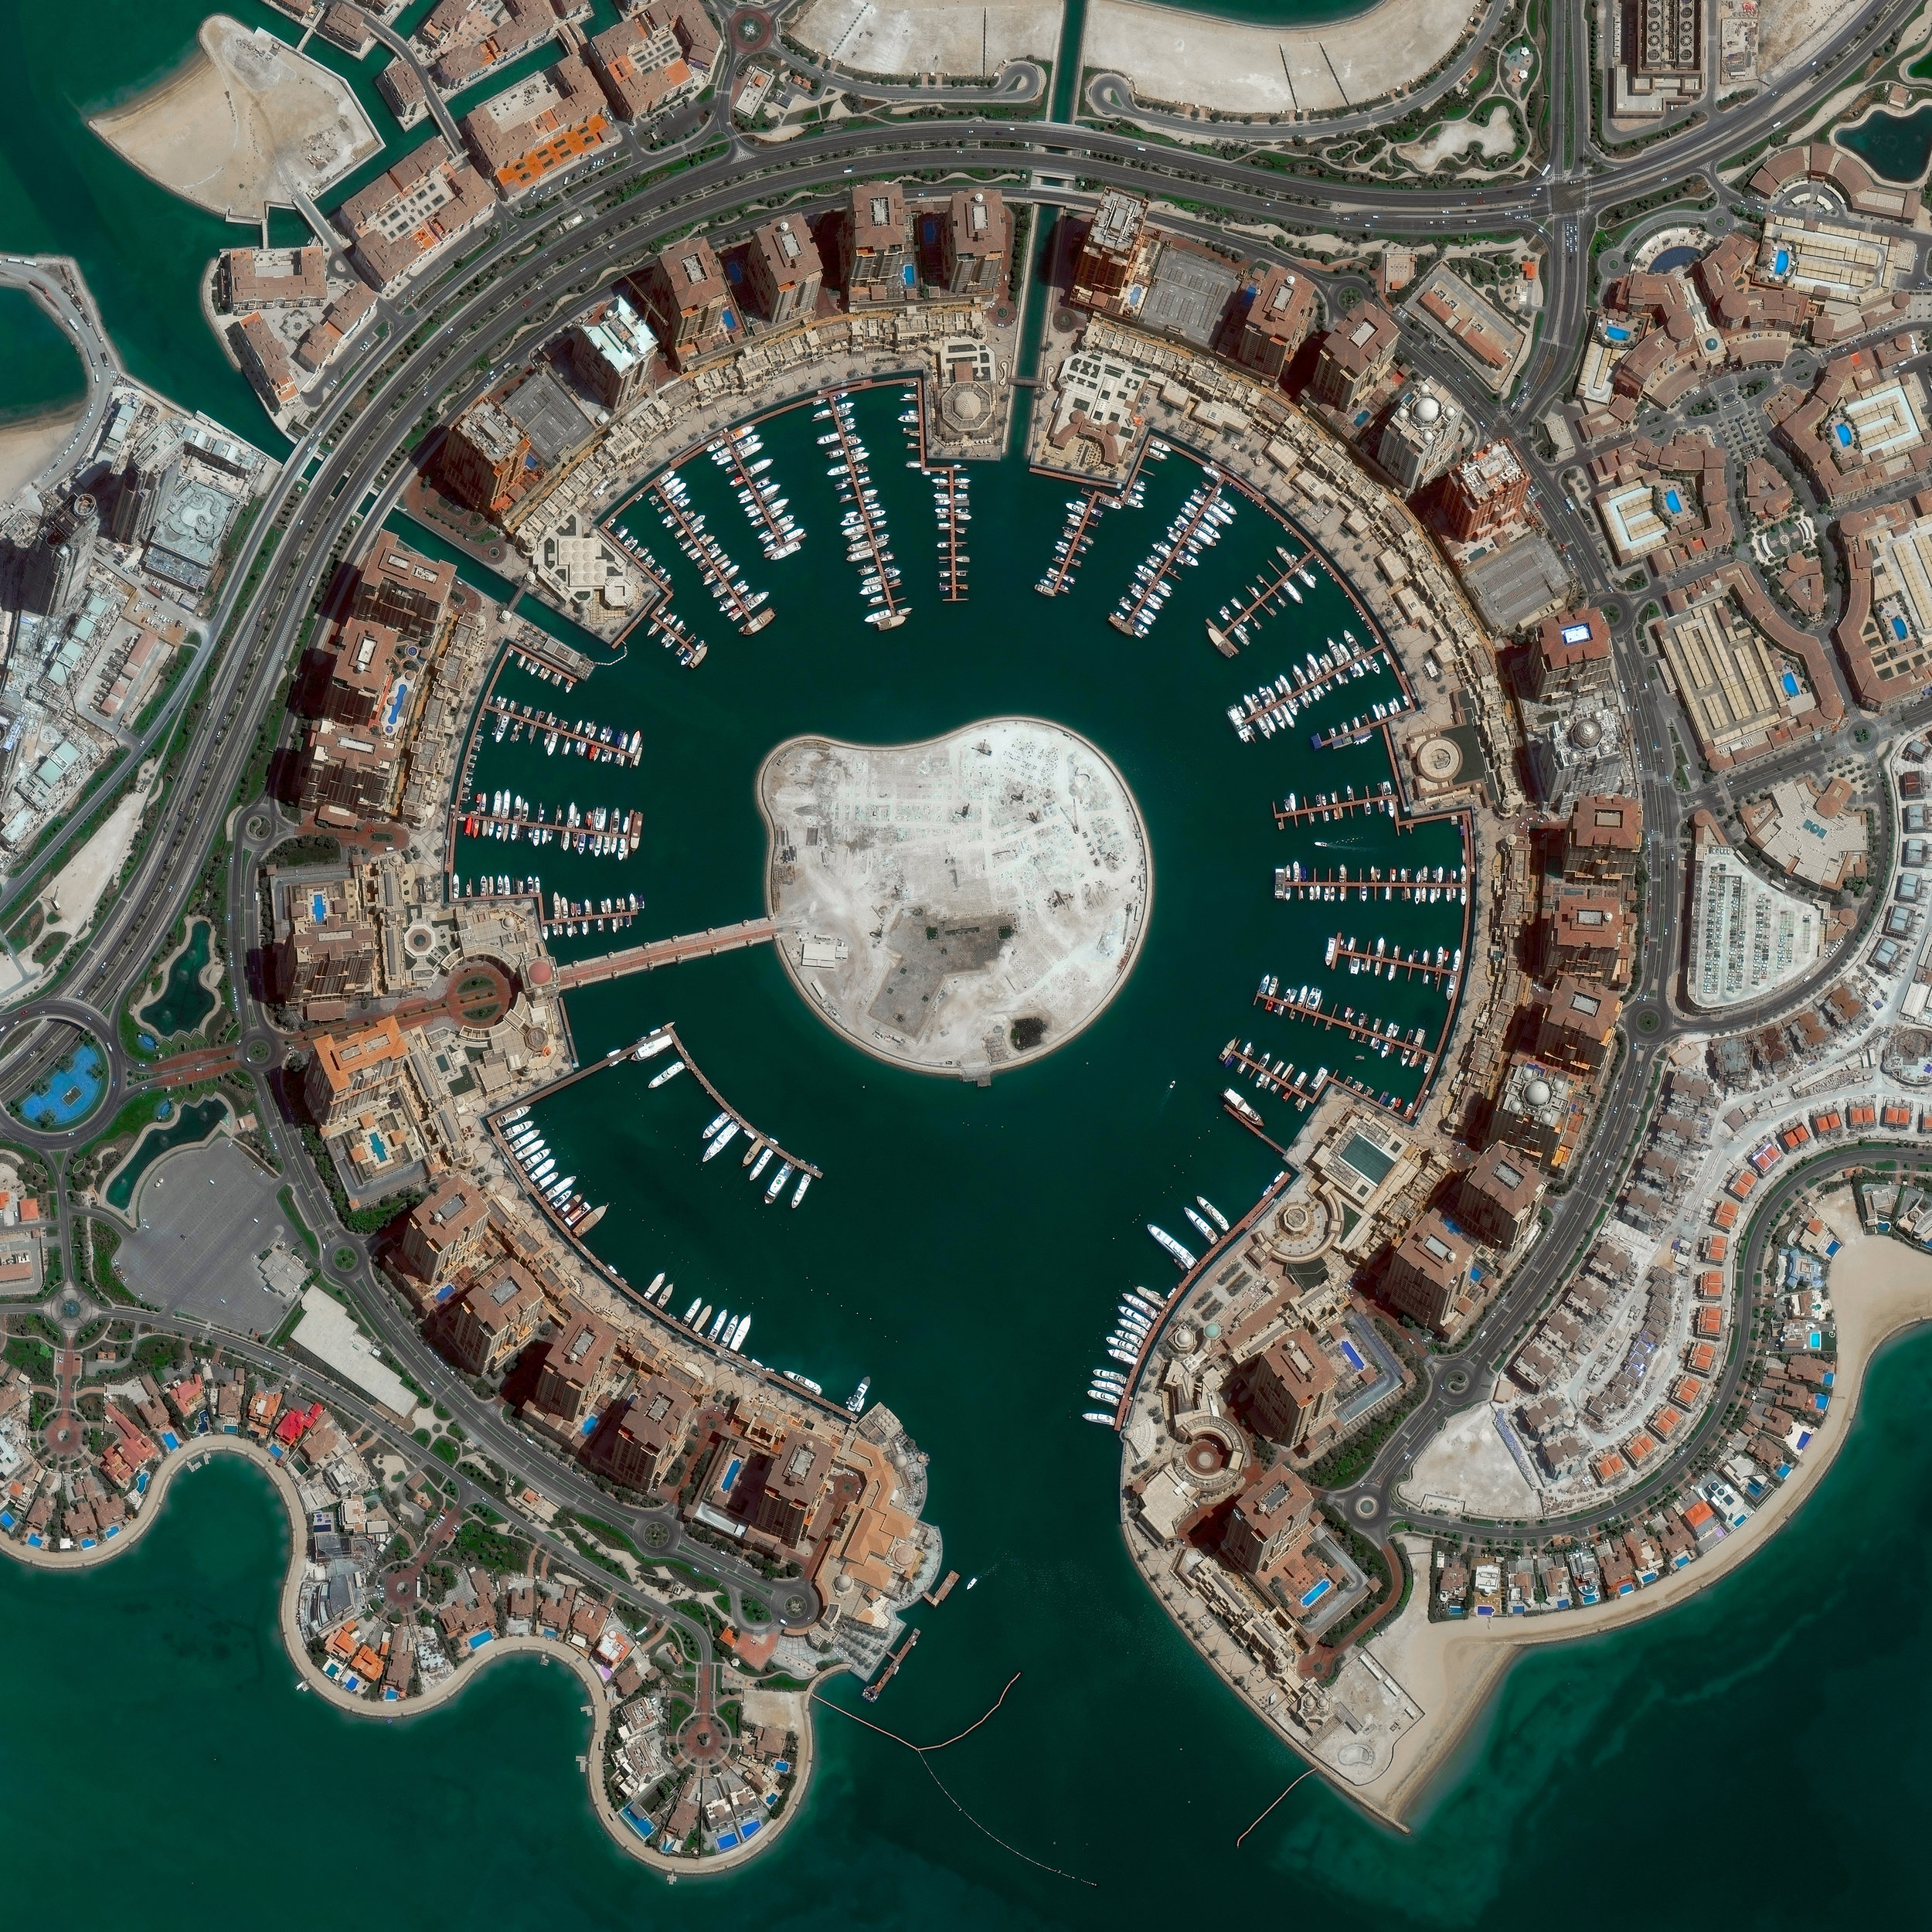 """The Pearl-Qatar is an artificial island in Doha, Qatar, spanning nearly 2.5 miles (4 km) in the Persian Gulf. Once completed, the island is expected to have nearly 19,000 dwellings and 45,000 residents. Twelve precincts make up the Pearl-Qatar, and each one has a national or international theme — including aspects of Arabic, Mediterranean and European culture.  25°22'07.0""""N, 51°33'07.0""""E  Source imagery: DigitalGlobe"""